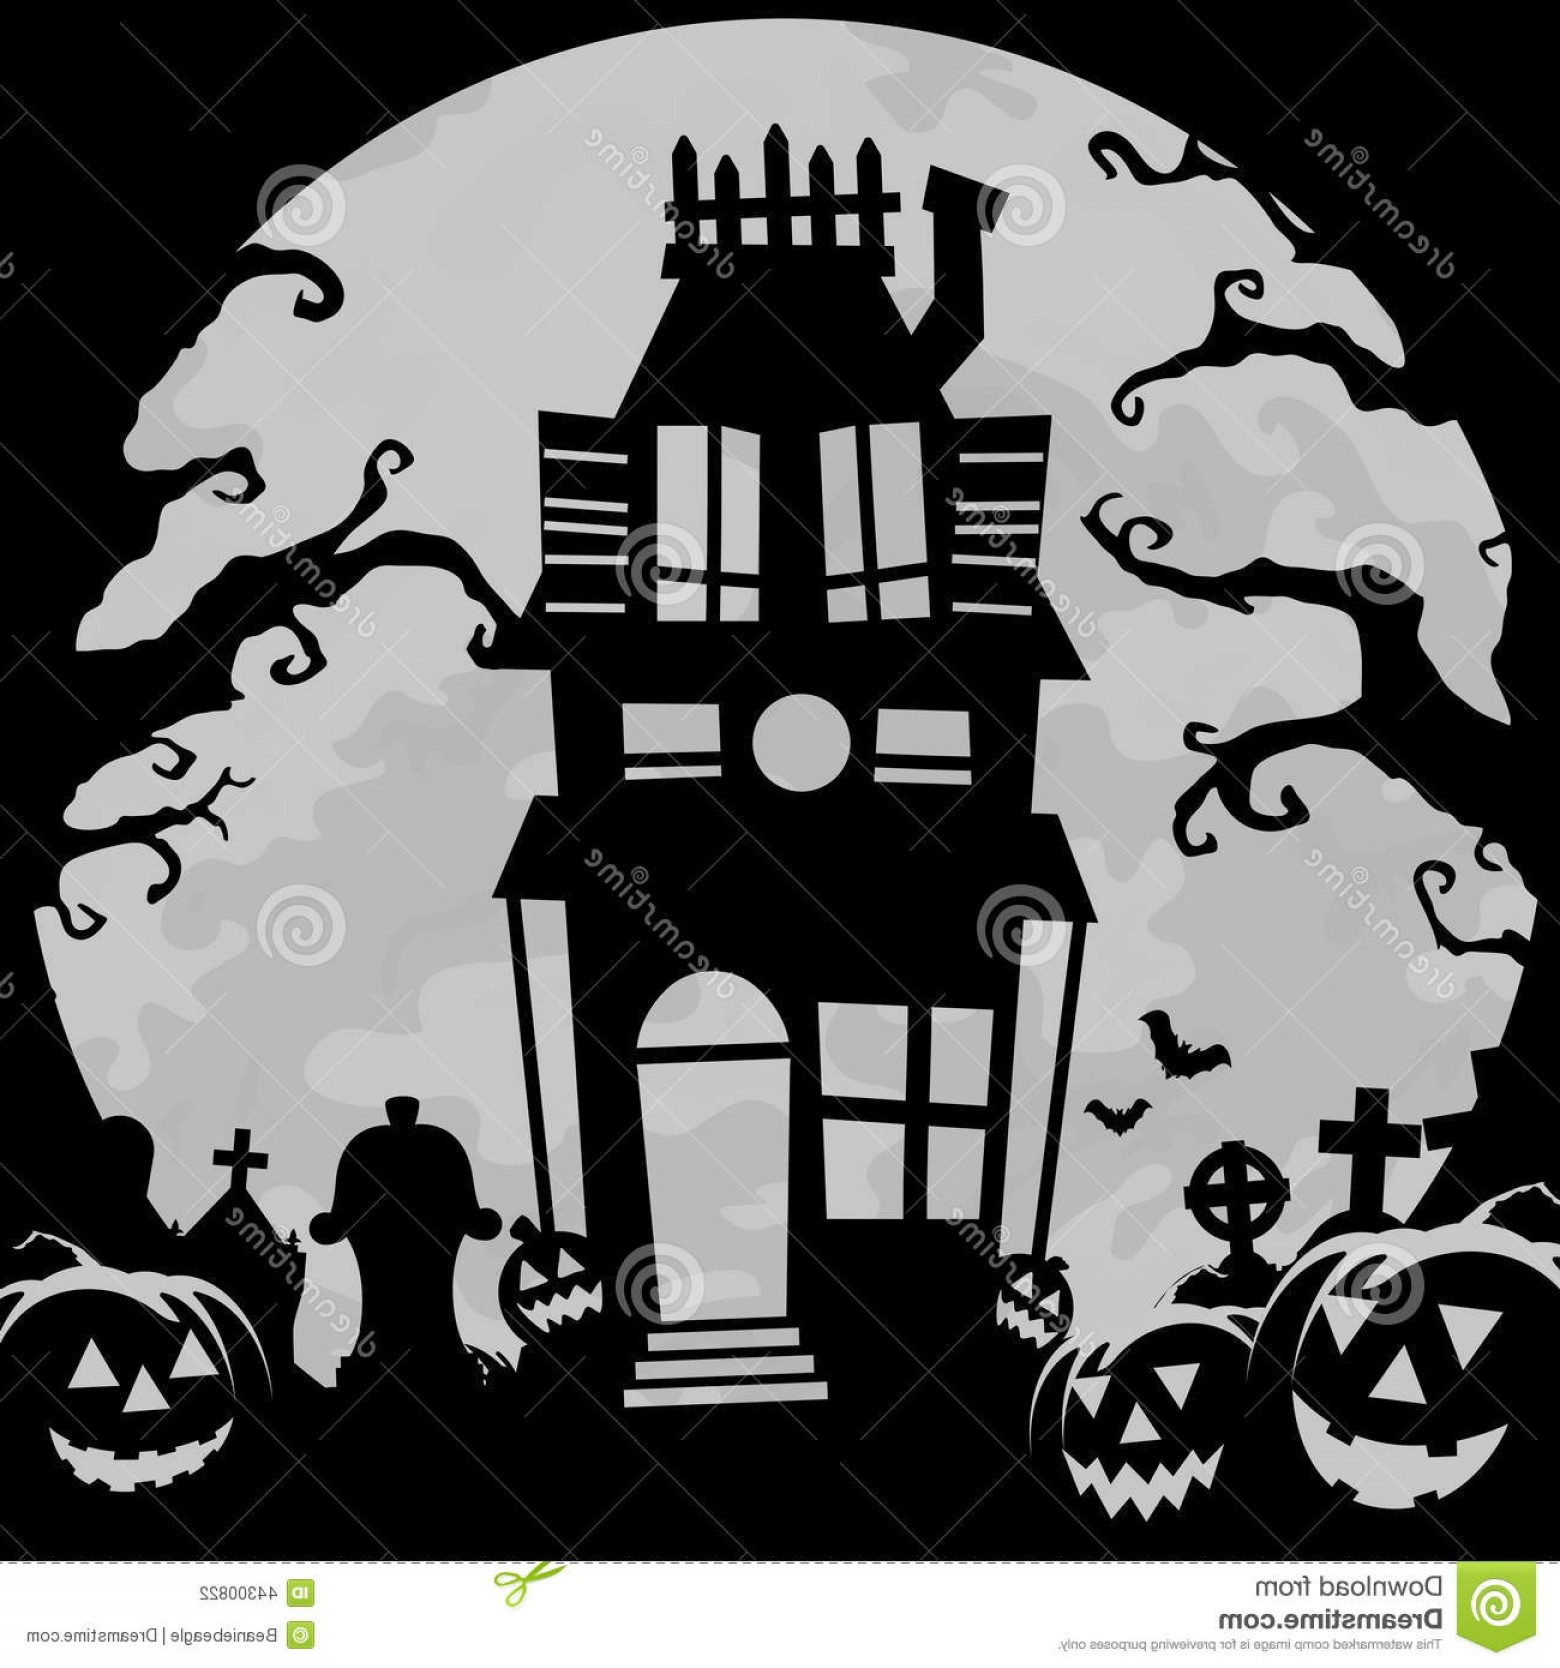 Halloween Haunted House Silhouette Vector: Stock Illustration Haunted House Background Creepy Halloween Image